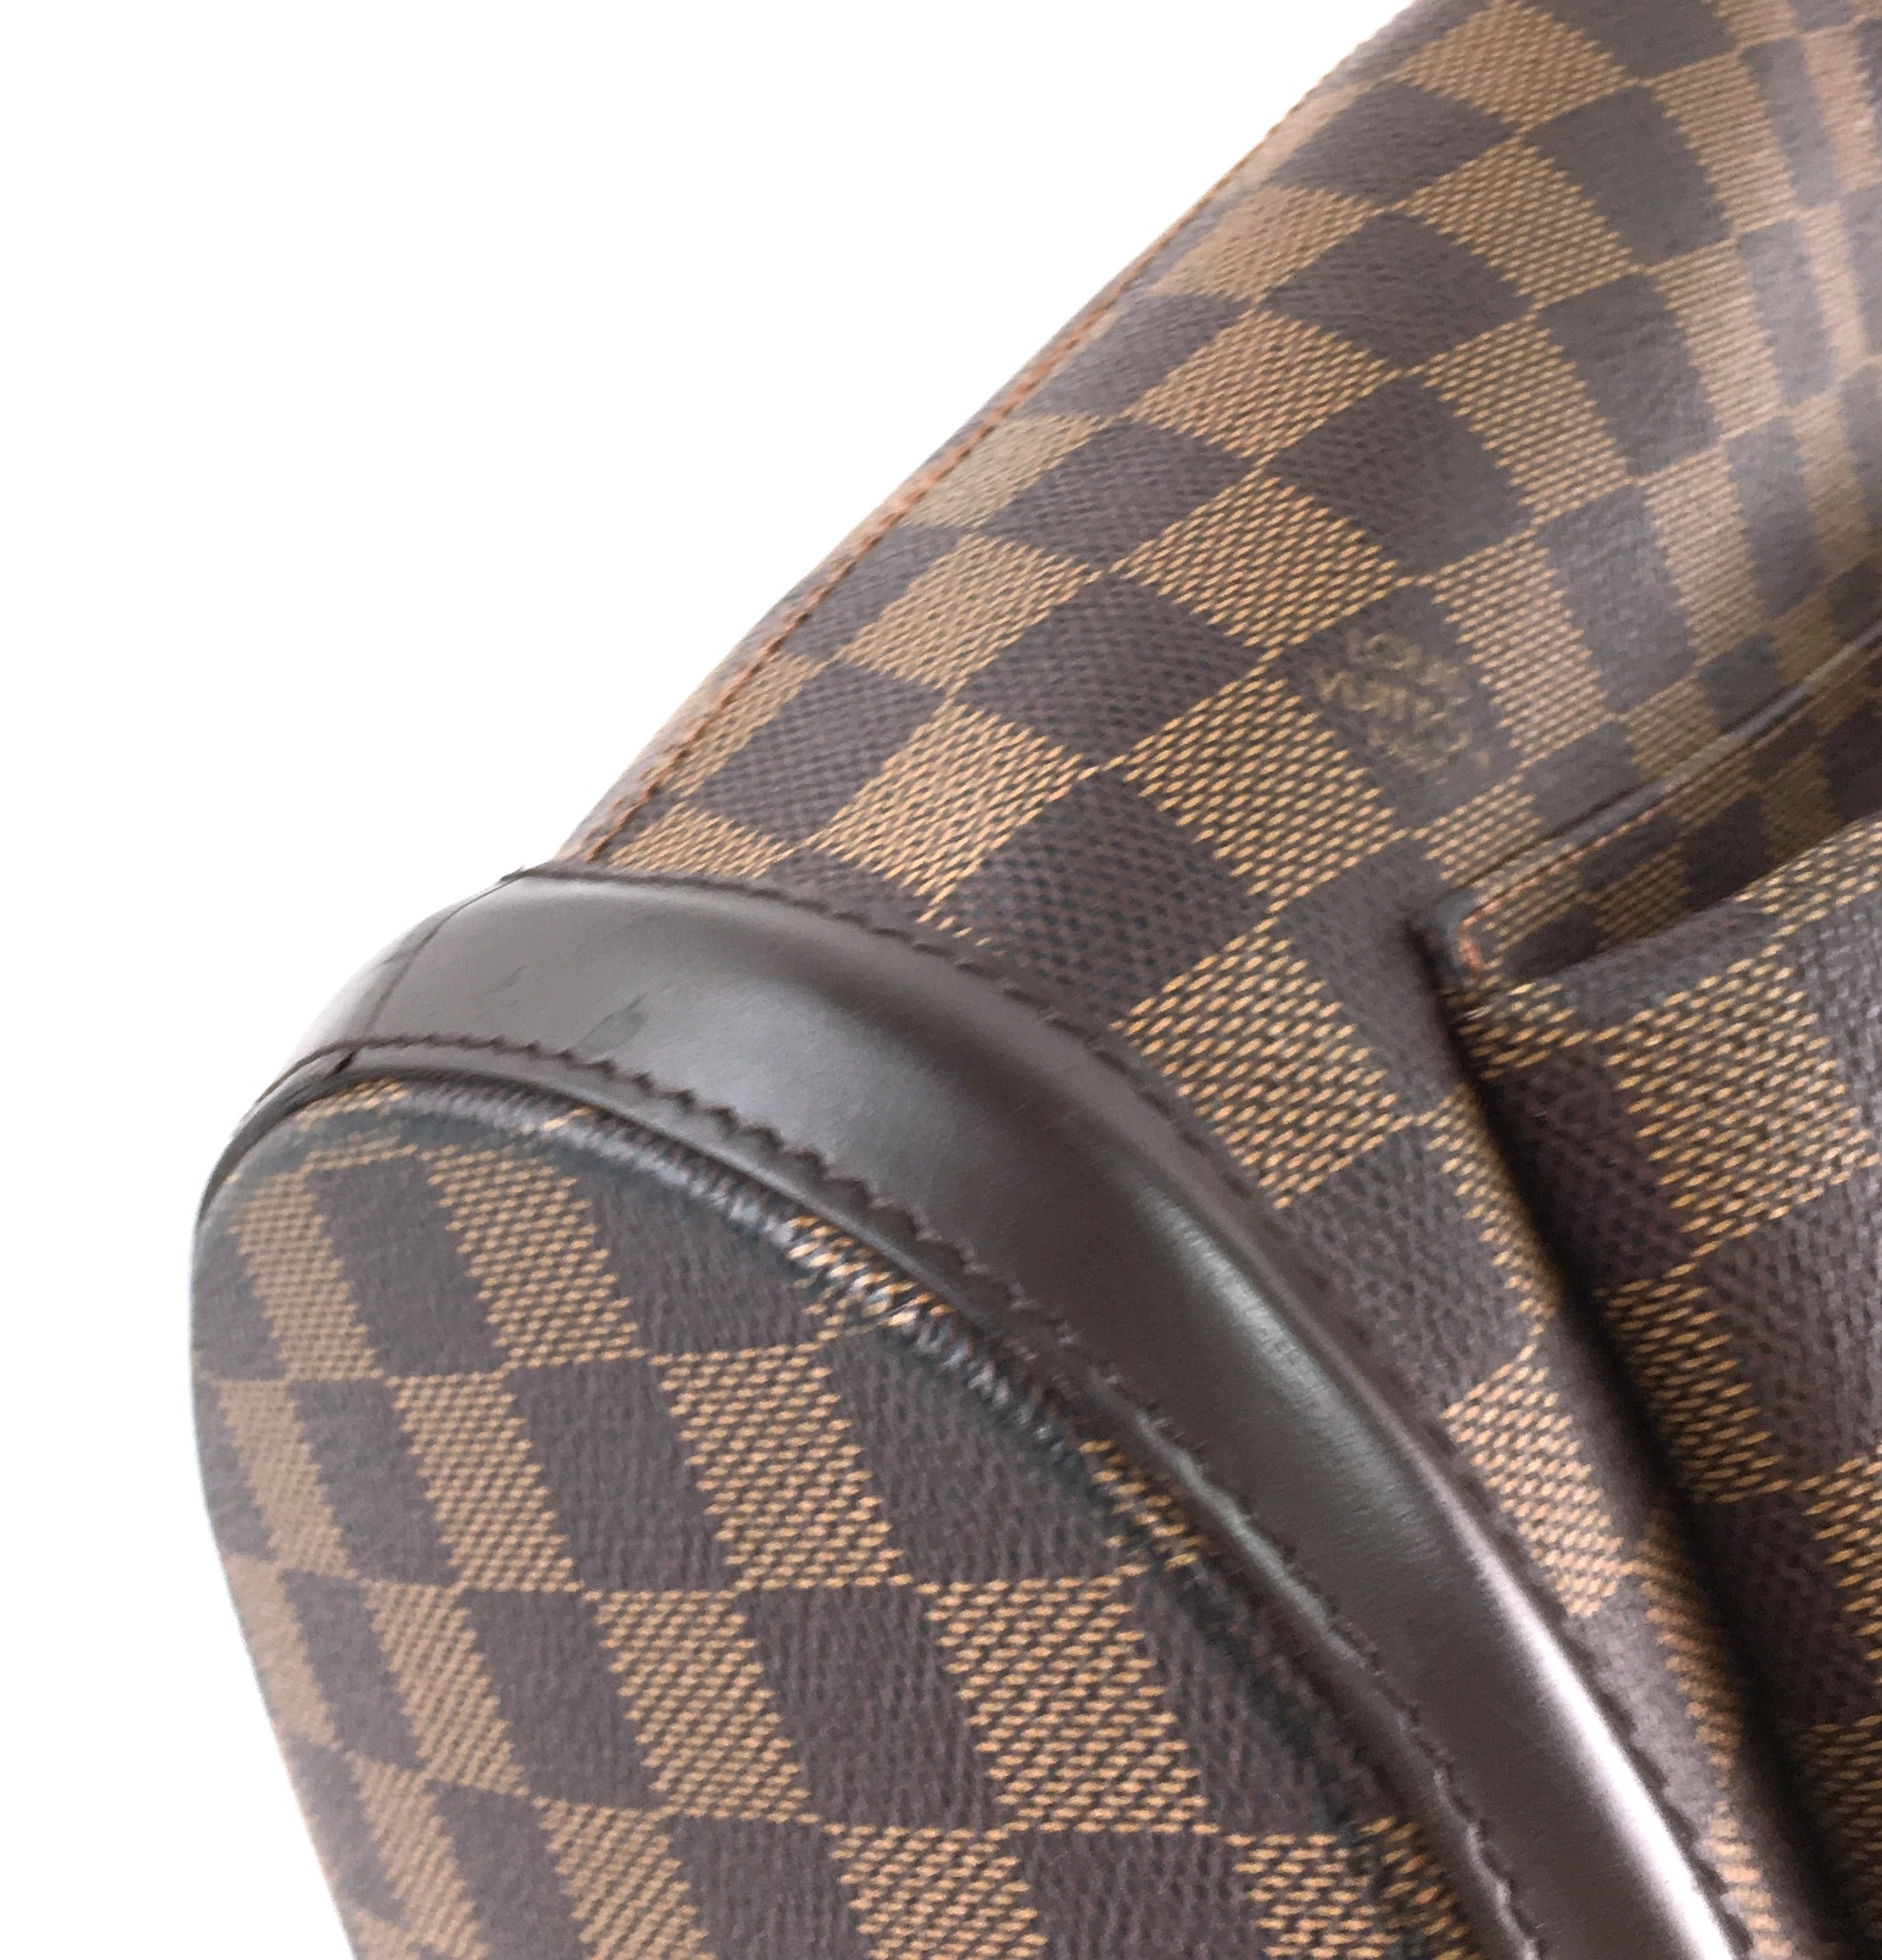 Louis Vuitton Manosque GM Damier Ébène Canvas